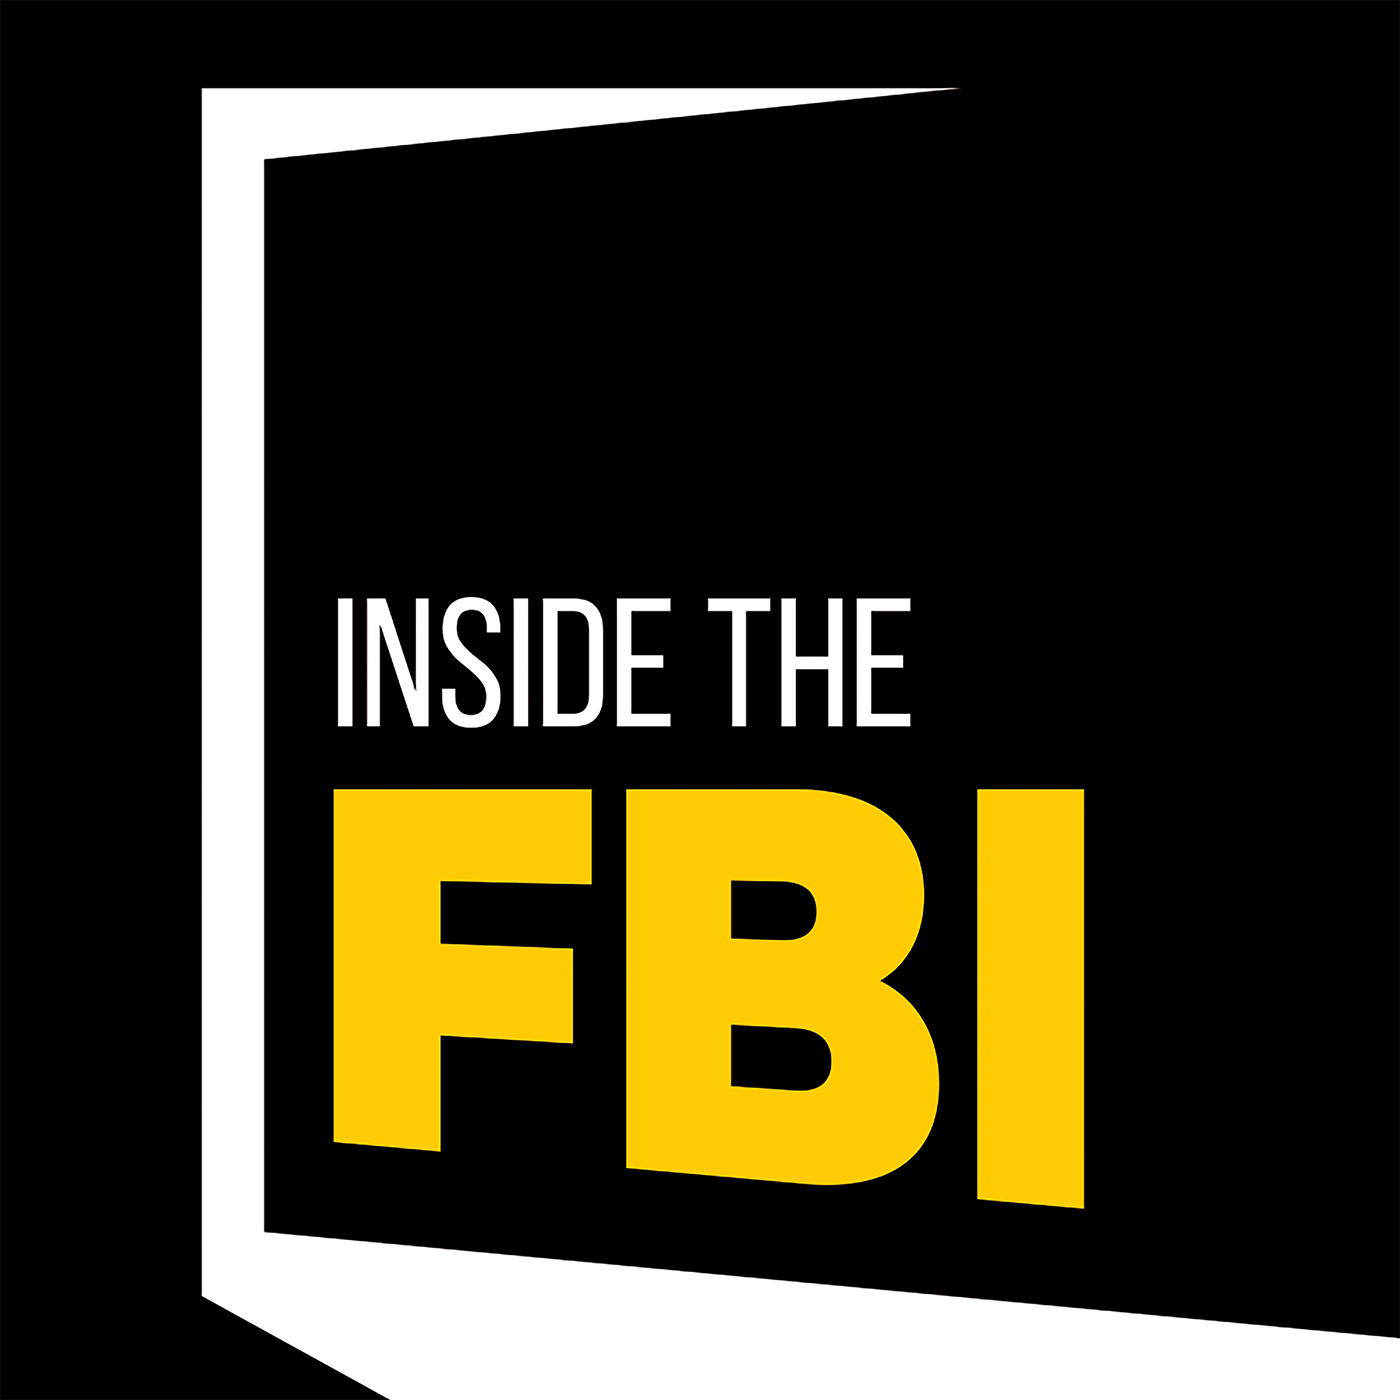 Square logo image for the Inside the FBI podcast